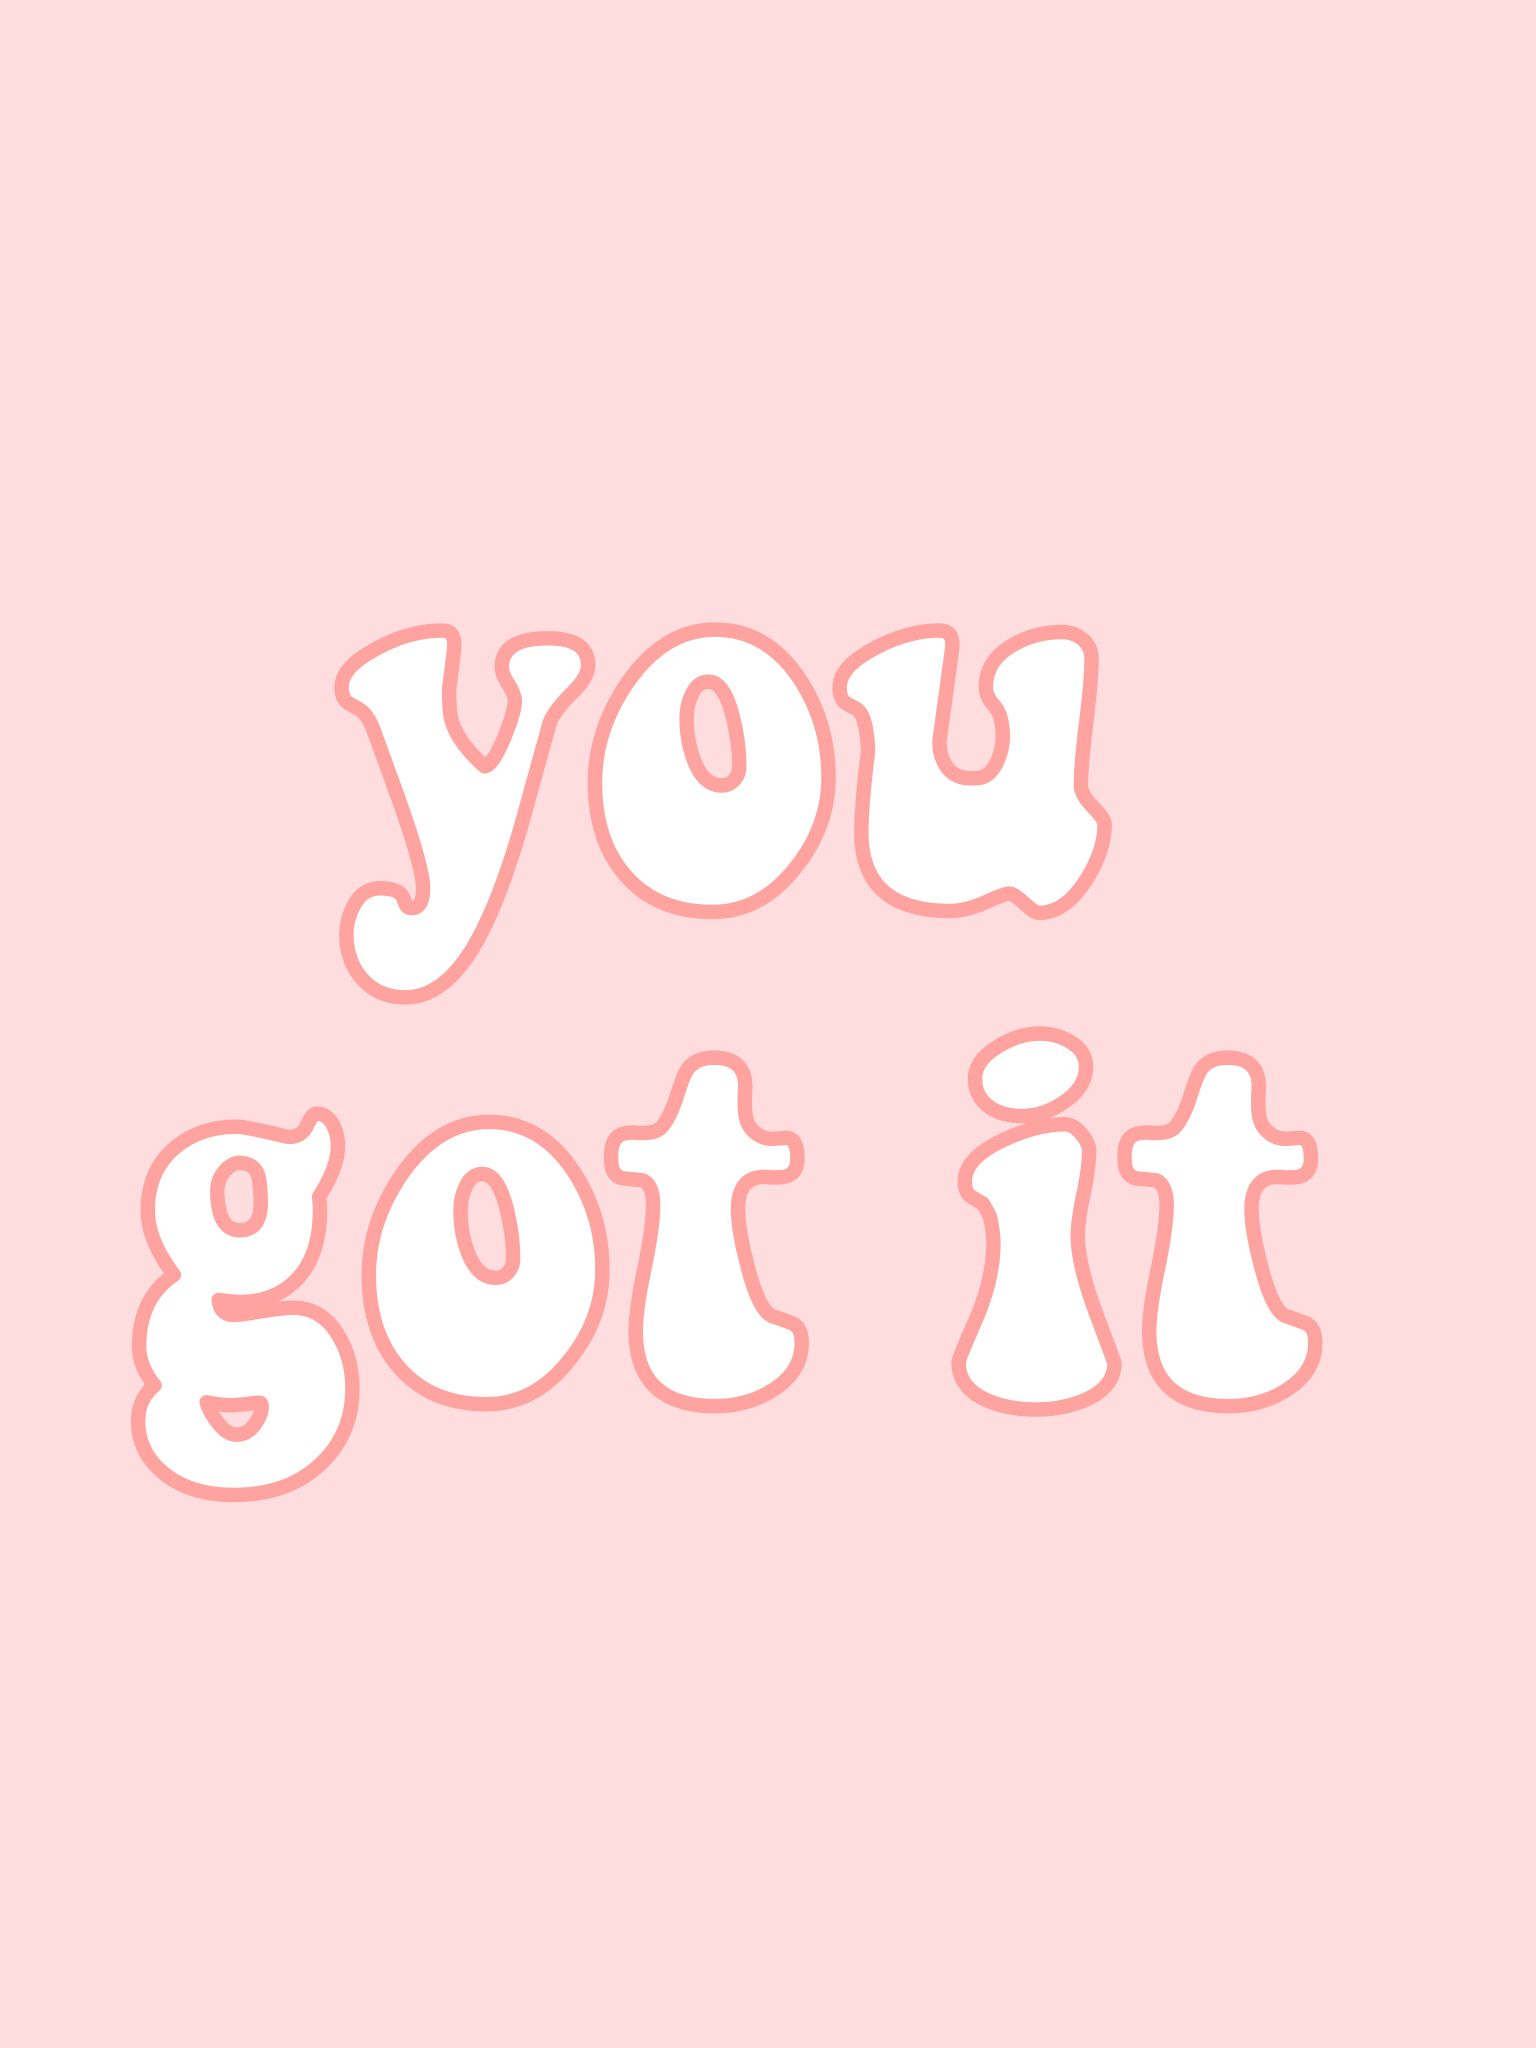 you got it quote words pink aesthetic vsco artsy tumblr